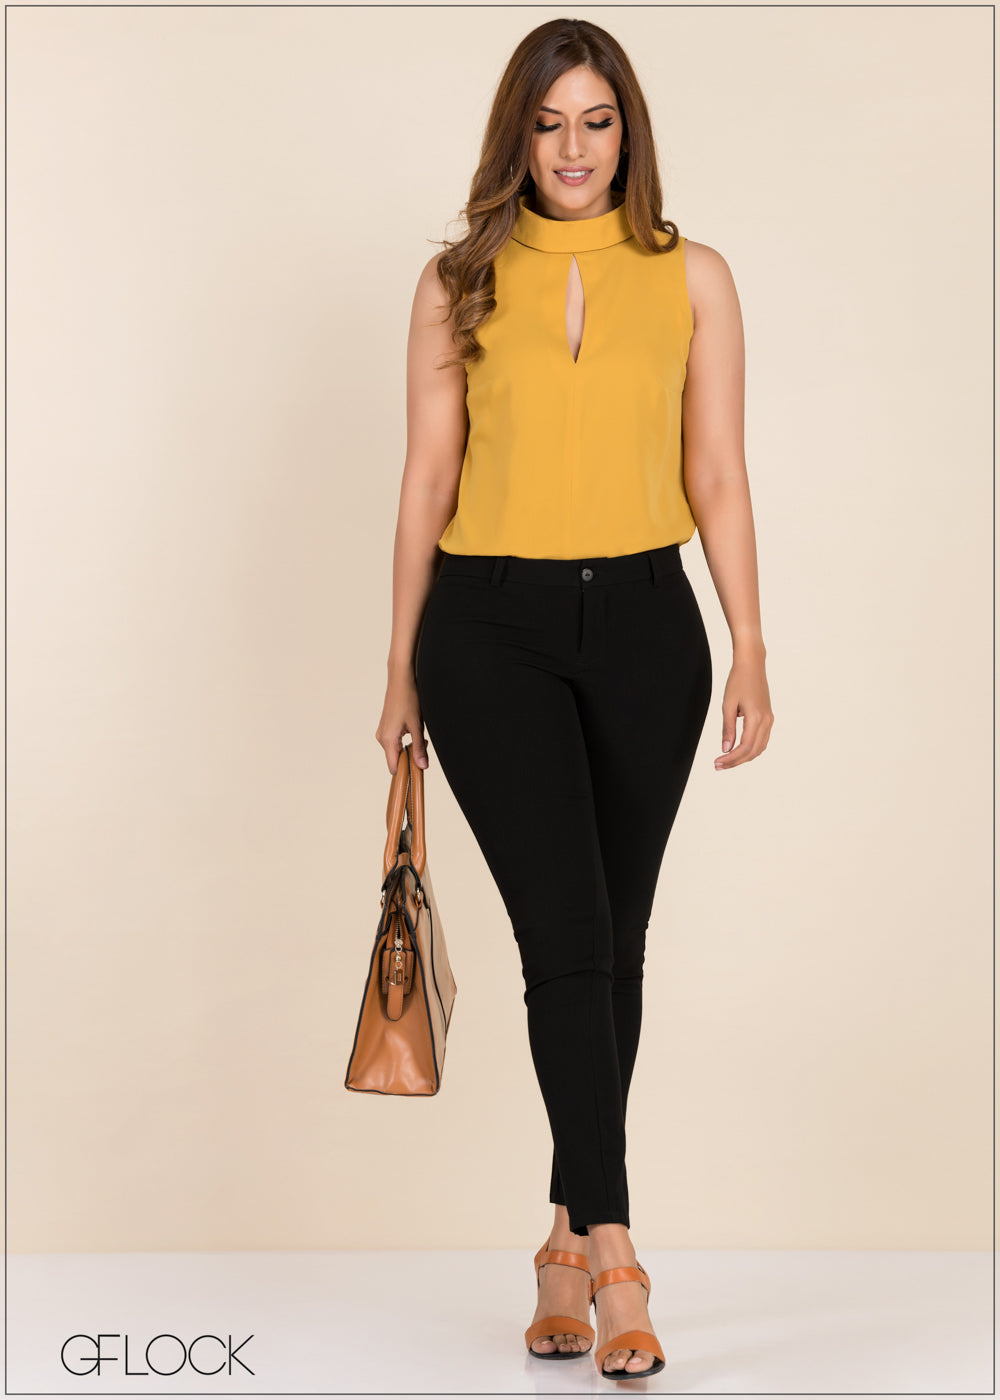 Sleeveless Top - GFLOCK.LK